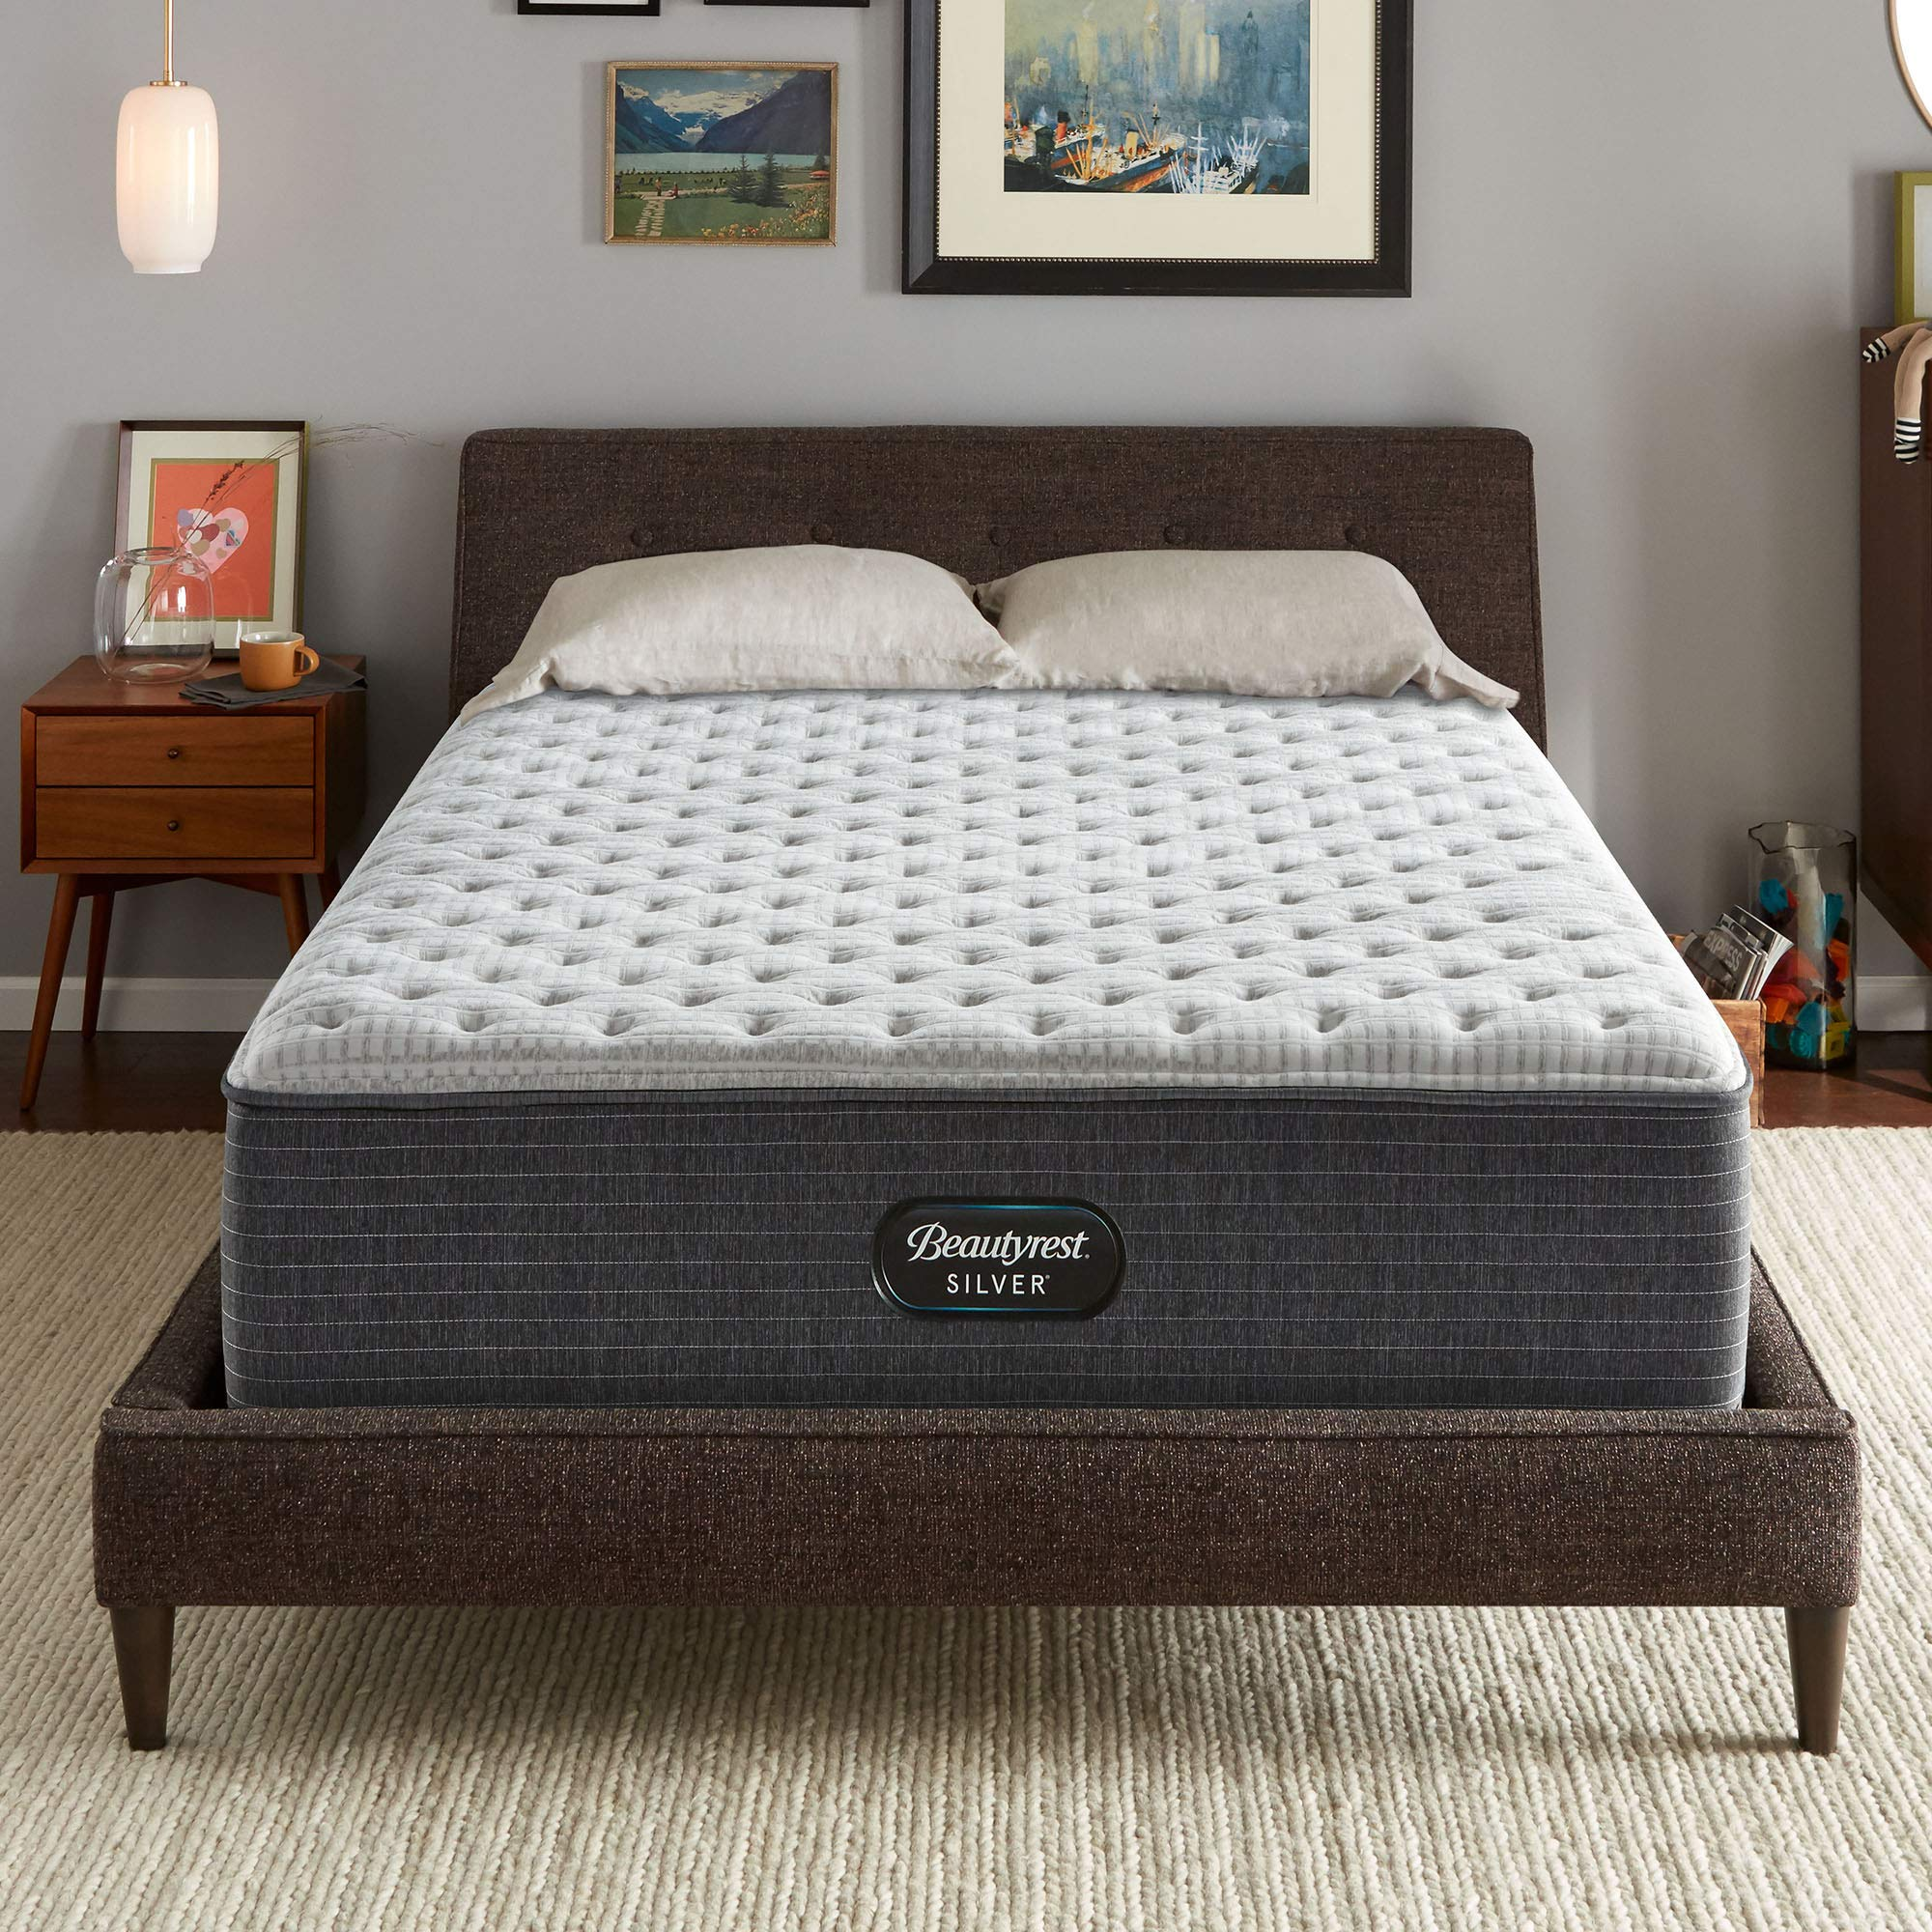 Beautyrest Silver BRS900-C 14 inch Extra Firm Innerspring Mattress, Queen, Mattress Only by Beautyrest